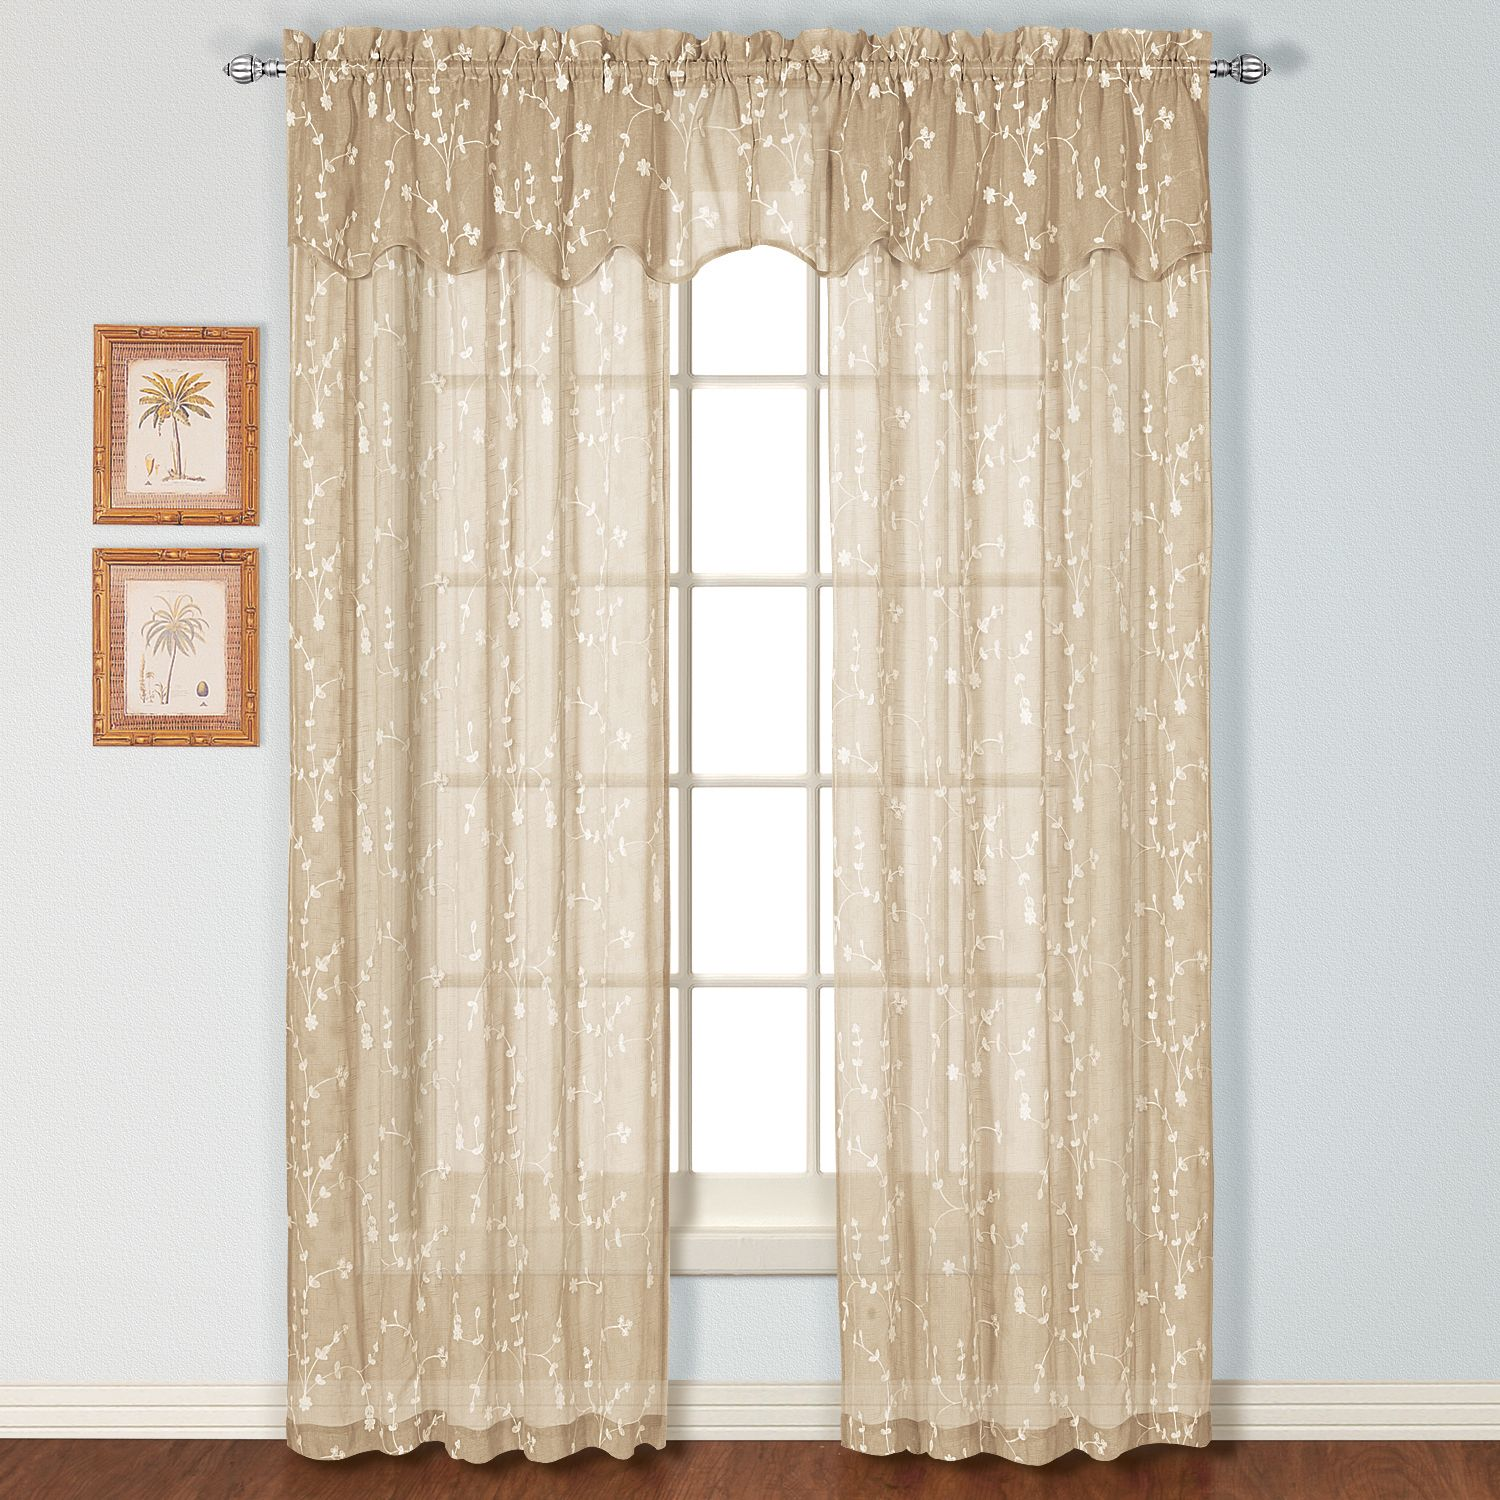 Savannah window fashions inc Hunter Douglas Window Treatments Blinds and Shutters in